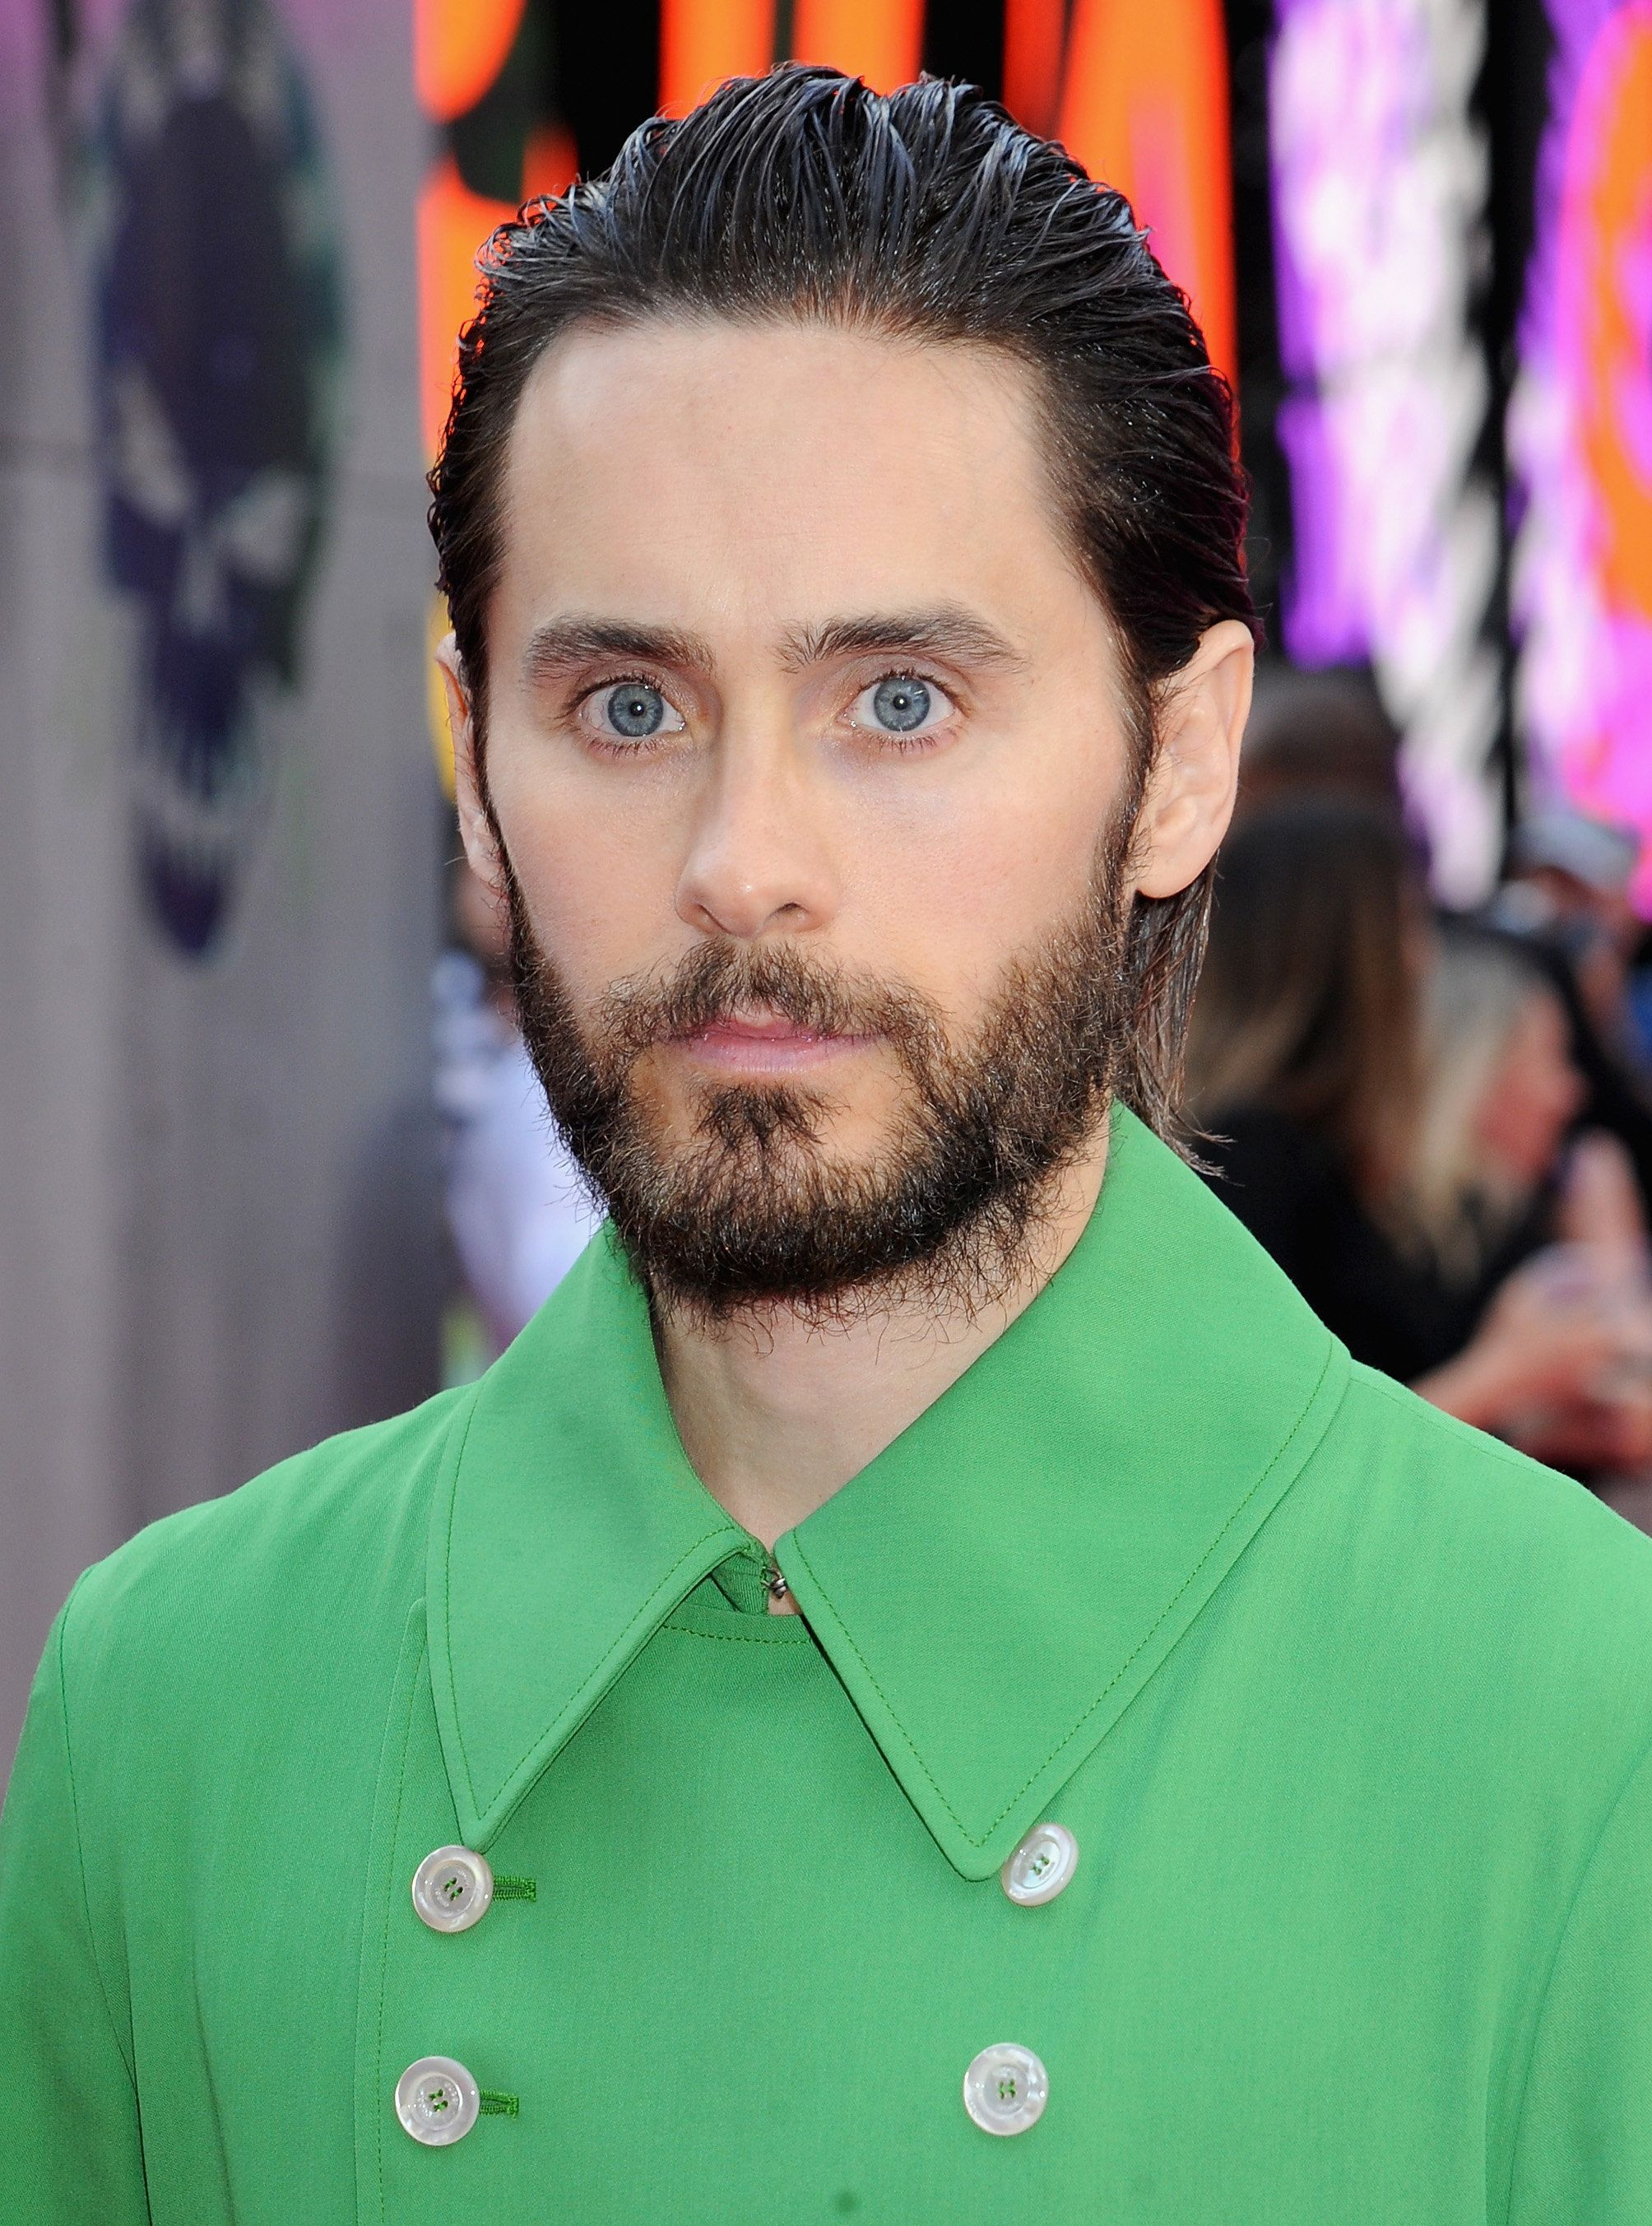 LONDON, ENGLAND - AUGUST 03:  Jared Leto attends the European Premiere of 'Suicide Squad' at Odeon Leicester Square on August 3, 2016 in London, England.  (Photo by Dave J Hogan/Getty Images)